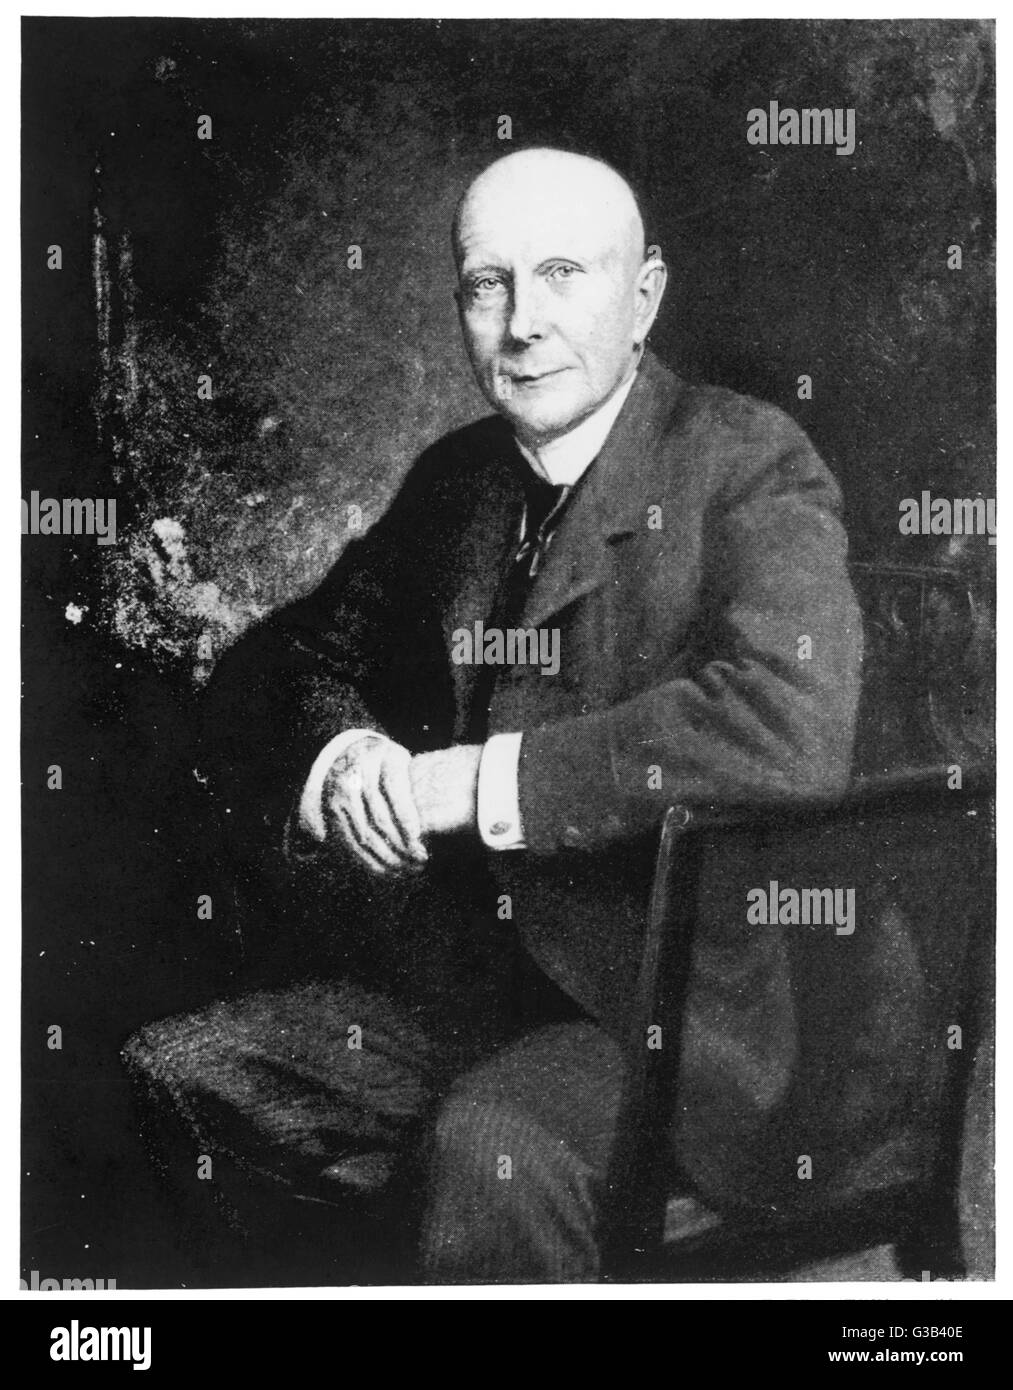 JOHN DAVISON ROCKEFELLER  US Financier. Received nearly  90 million dollars in cash and  stock due to the formation - Stock Image